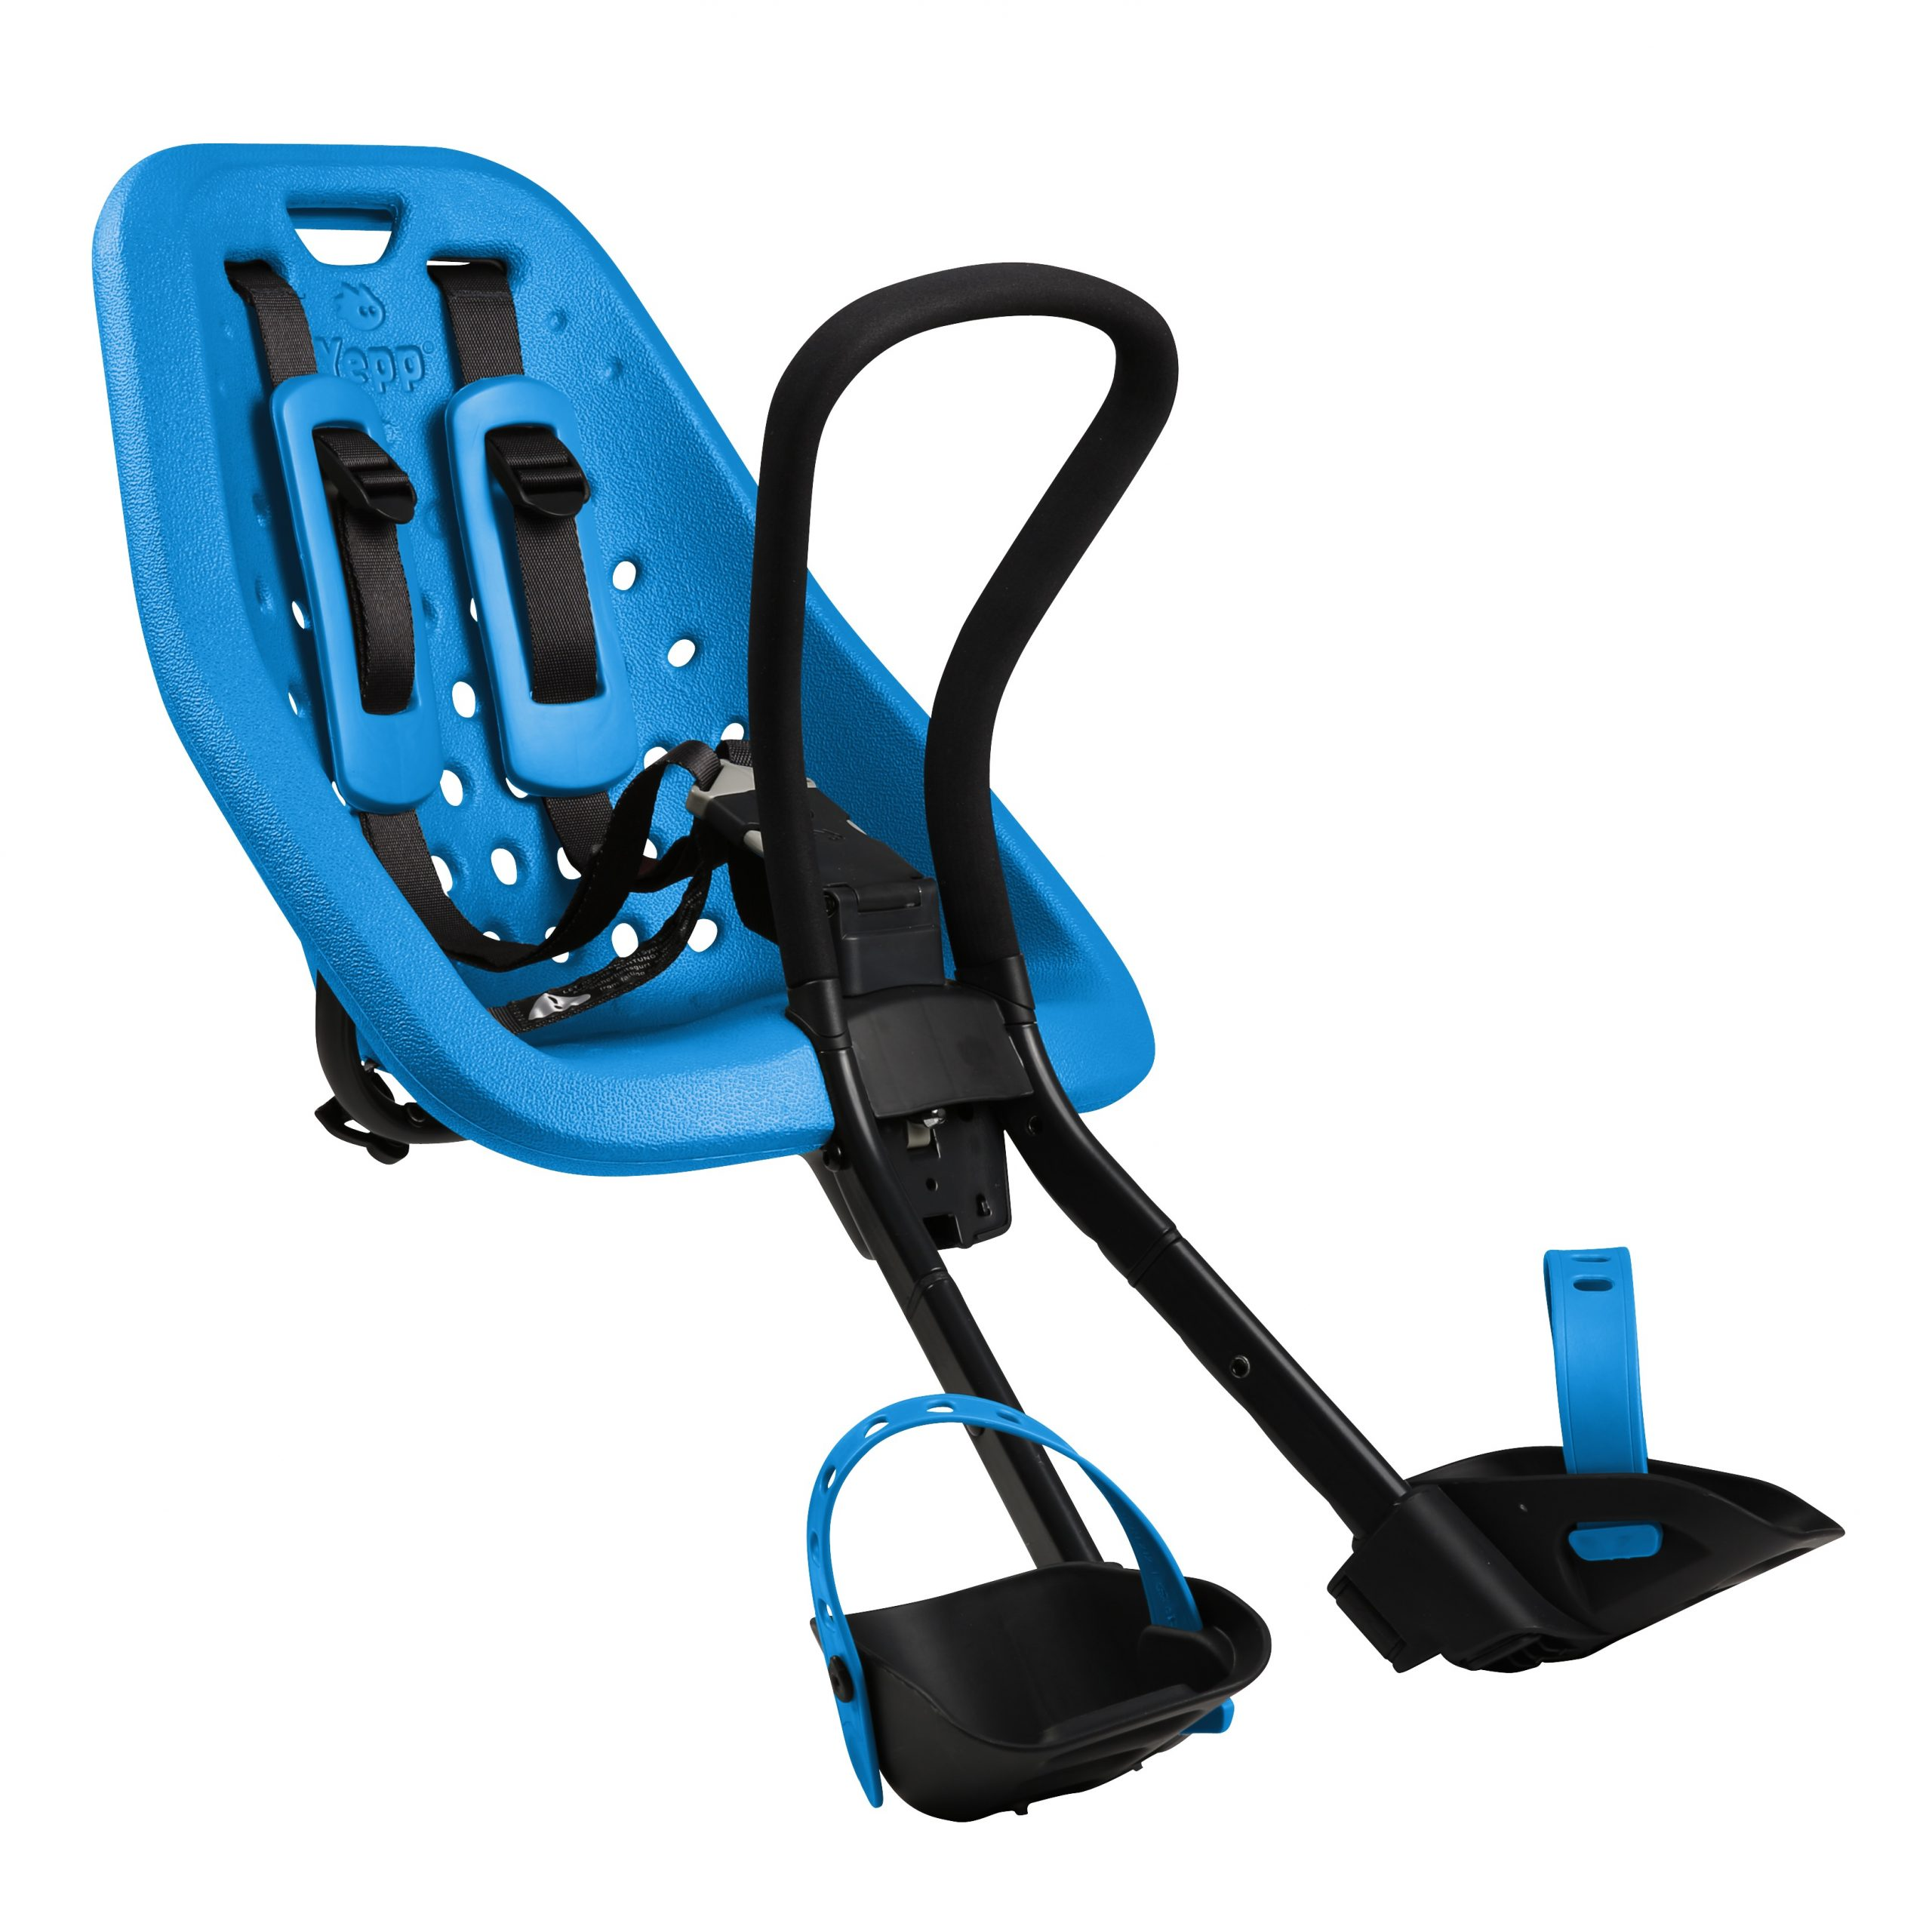 Bike Seats for Kids – What are the options?